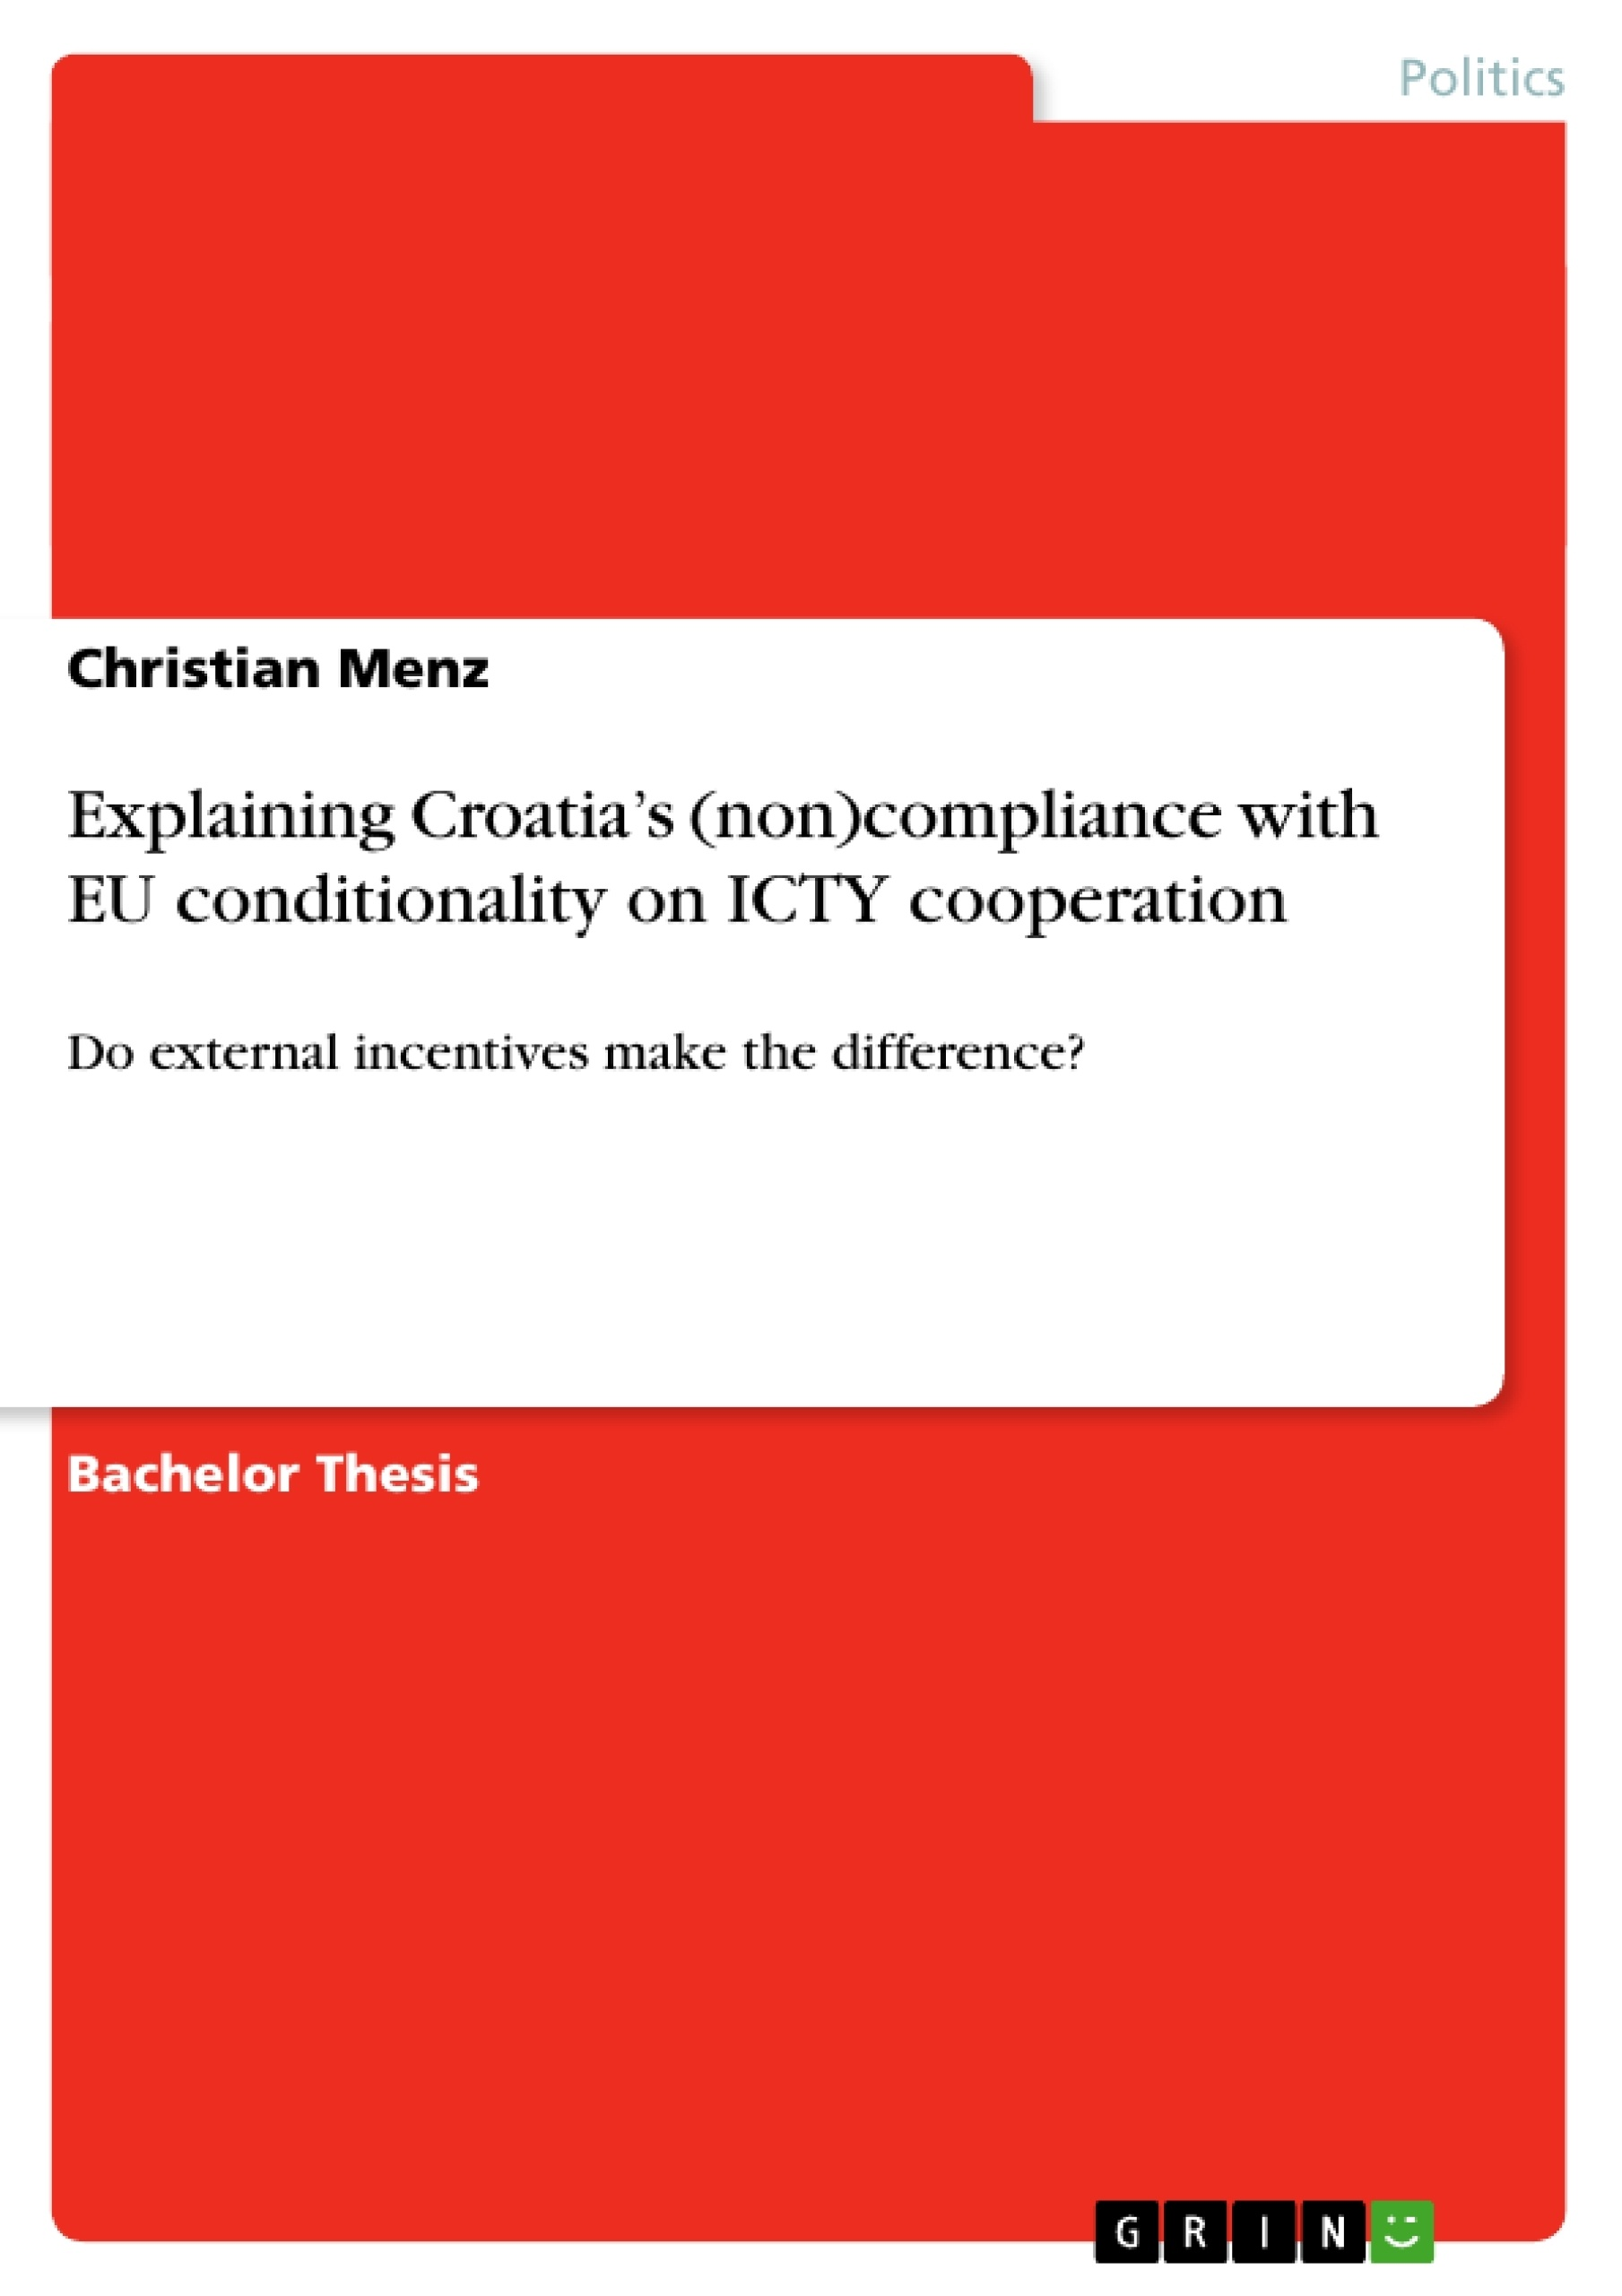 Title: Explaining Croatia's (non)compliance  with EU conditionality on ICTY cooperation